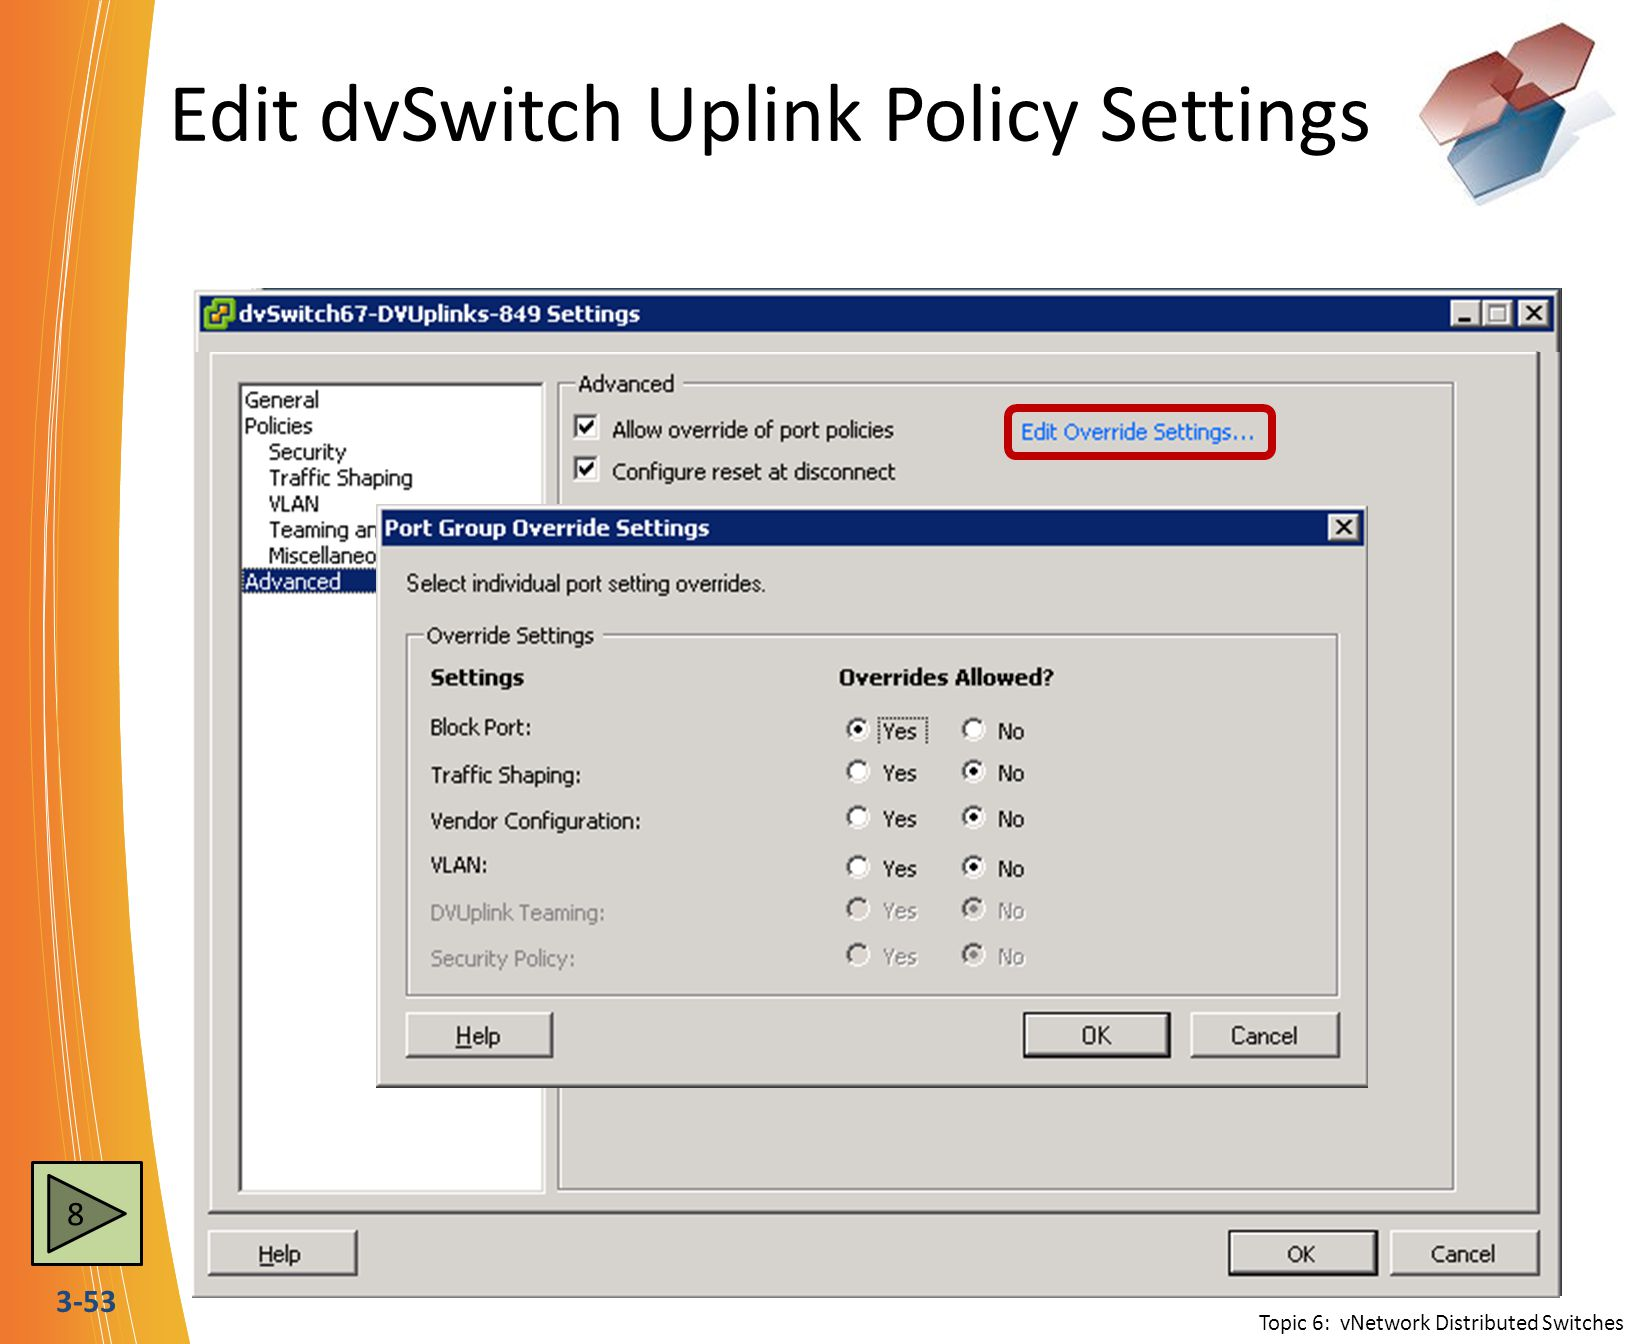 Edit dvSwitch Uplink Policy Settings